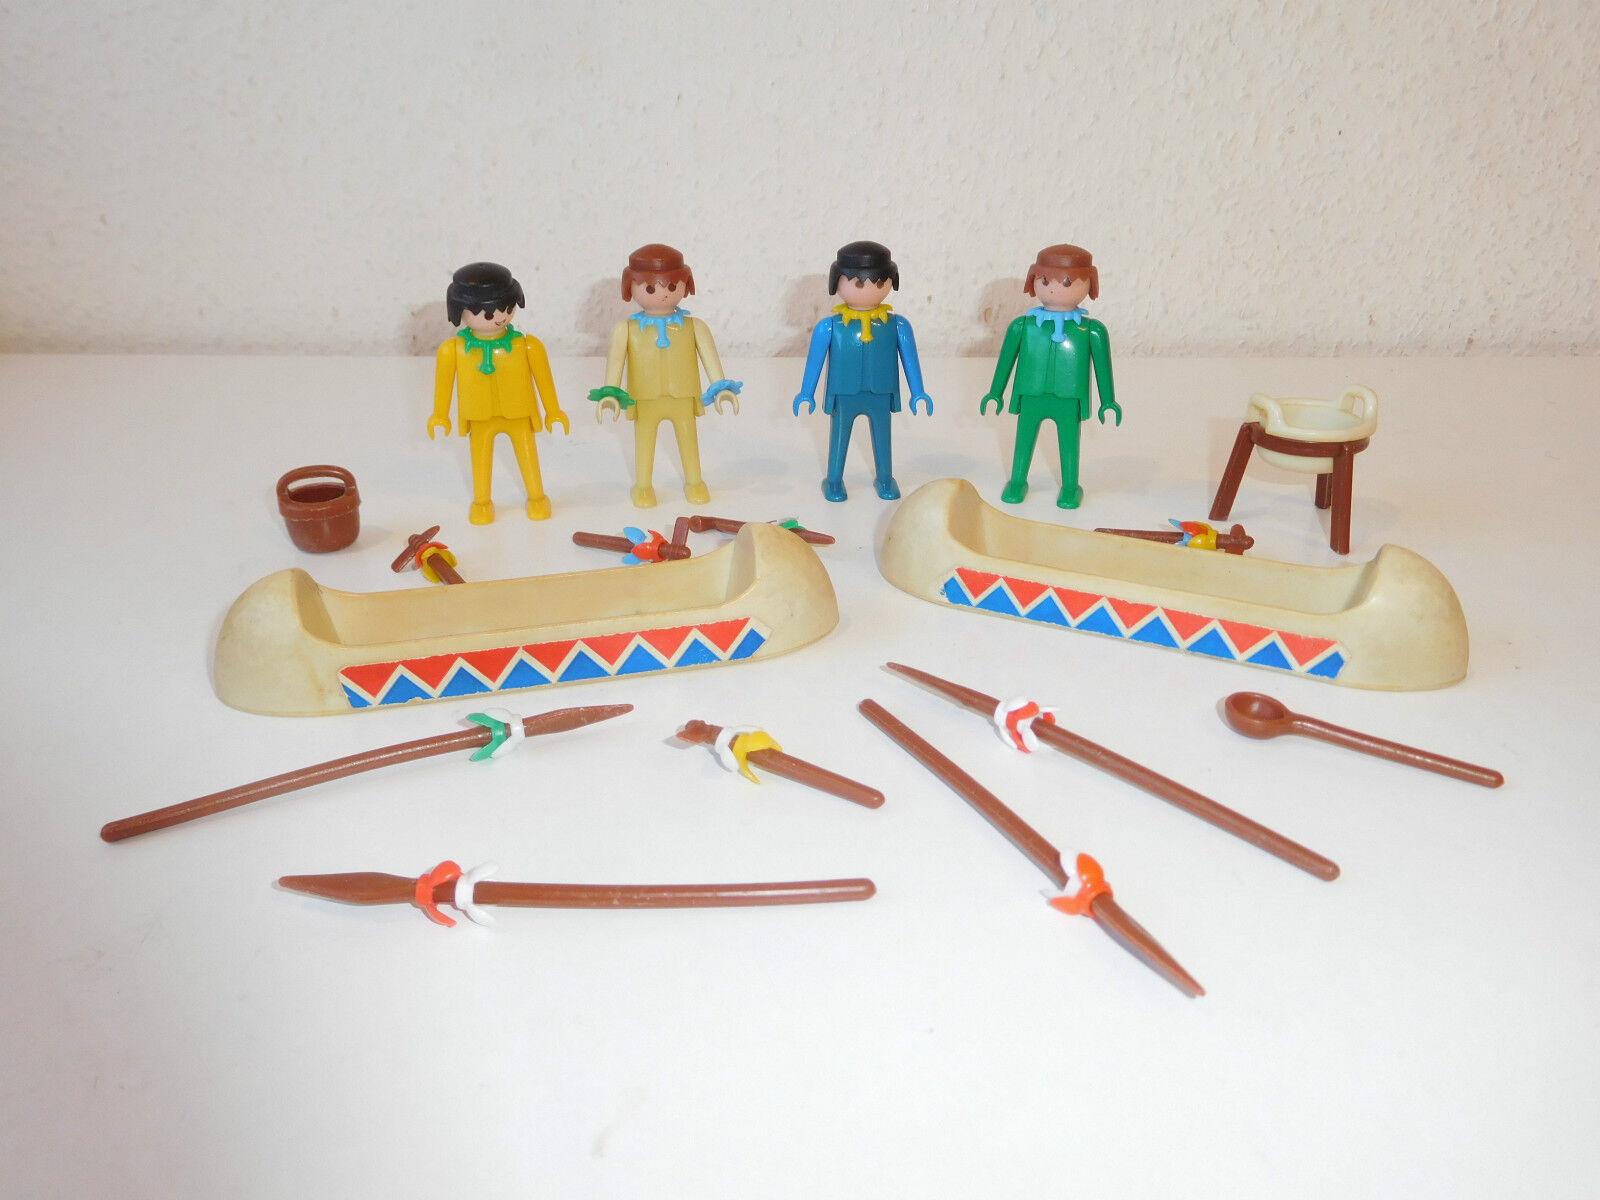 PLAYMOBIL 3259 3120 - Vintage First Klicky Pastel Indians with B b-Prägung (6)